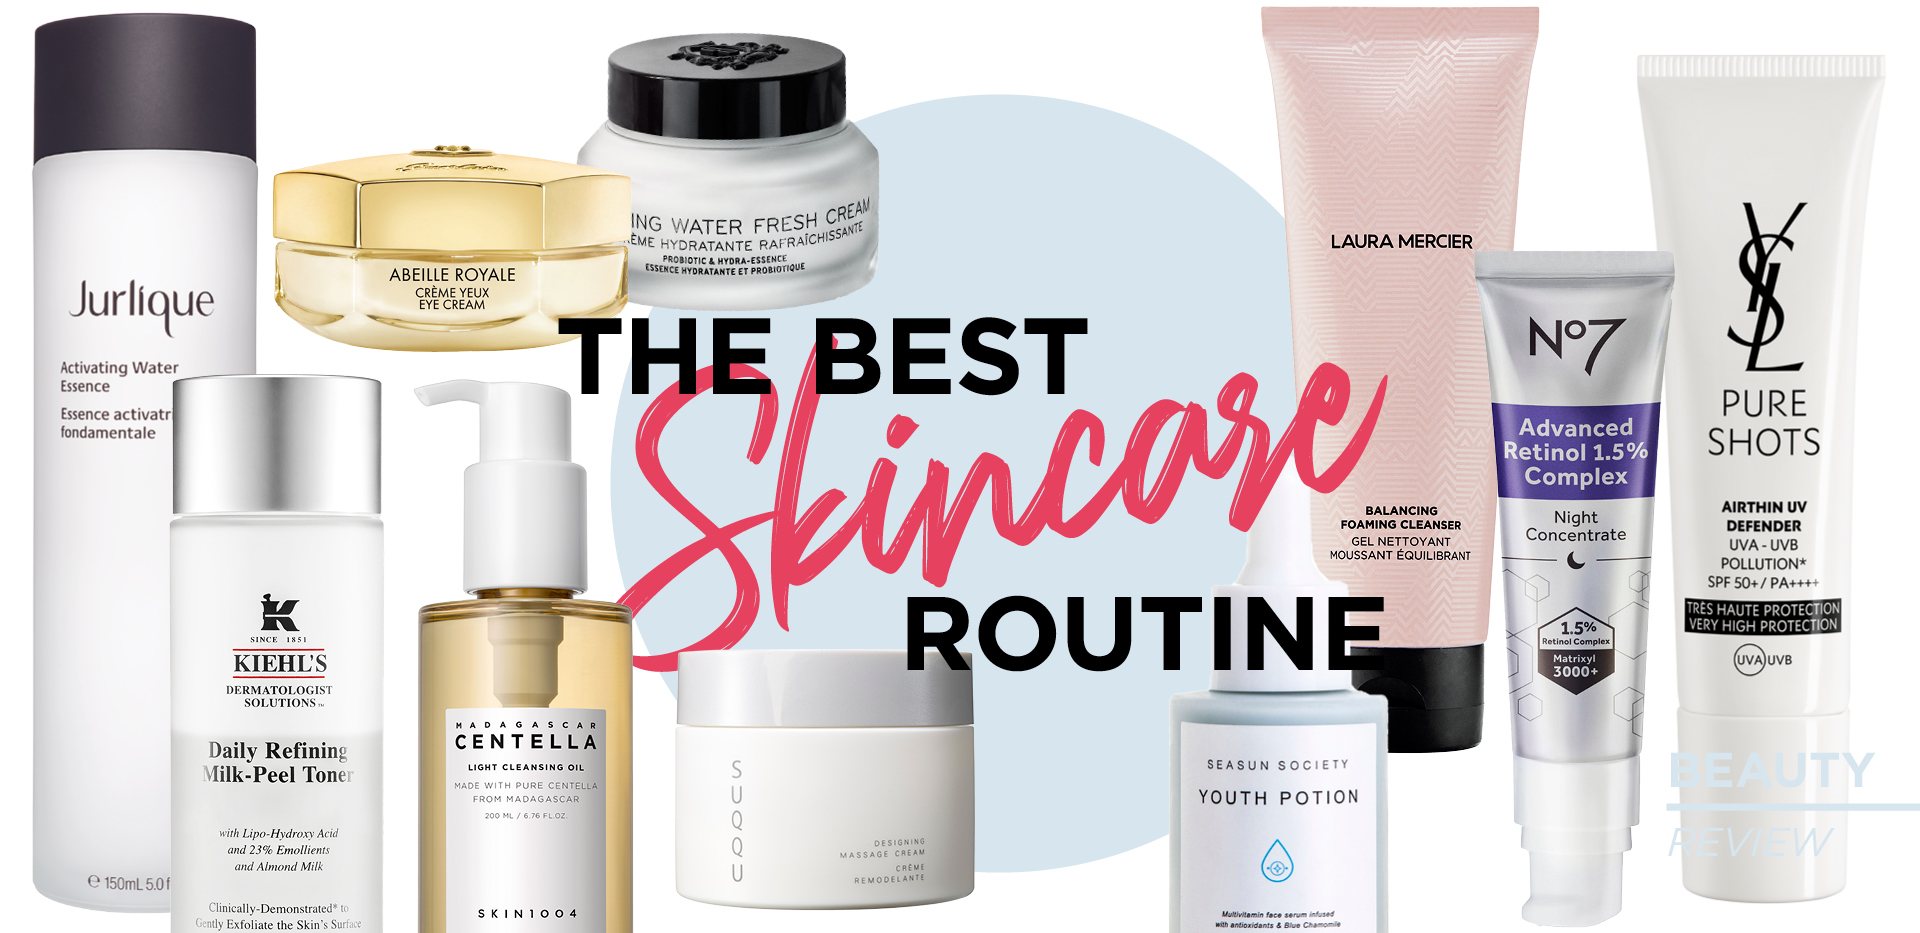 THE BEST SKINCARE ROUTINE